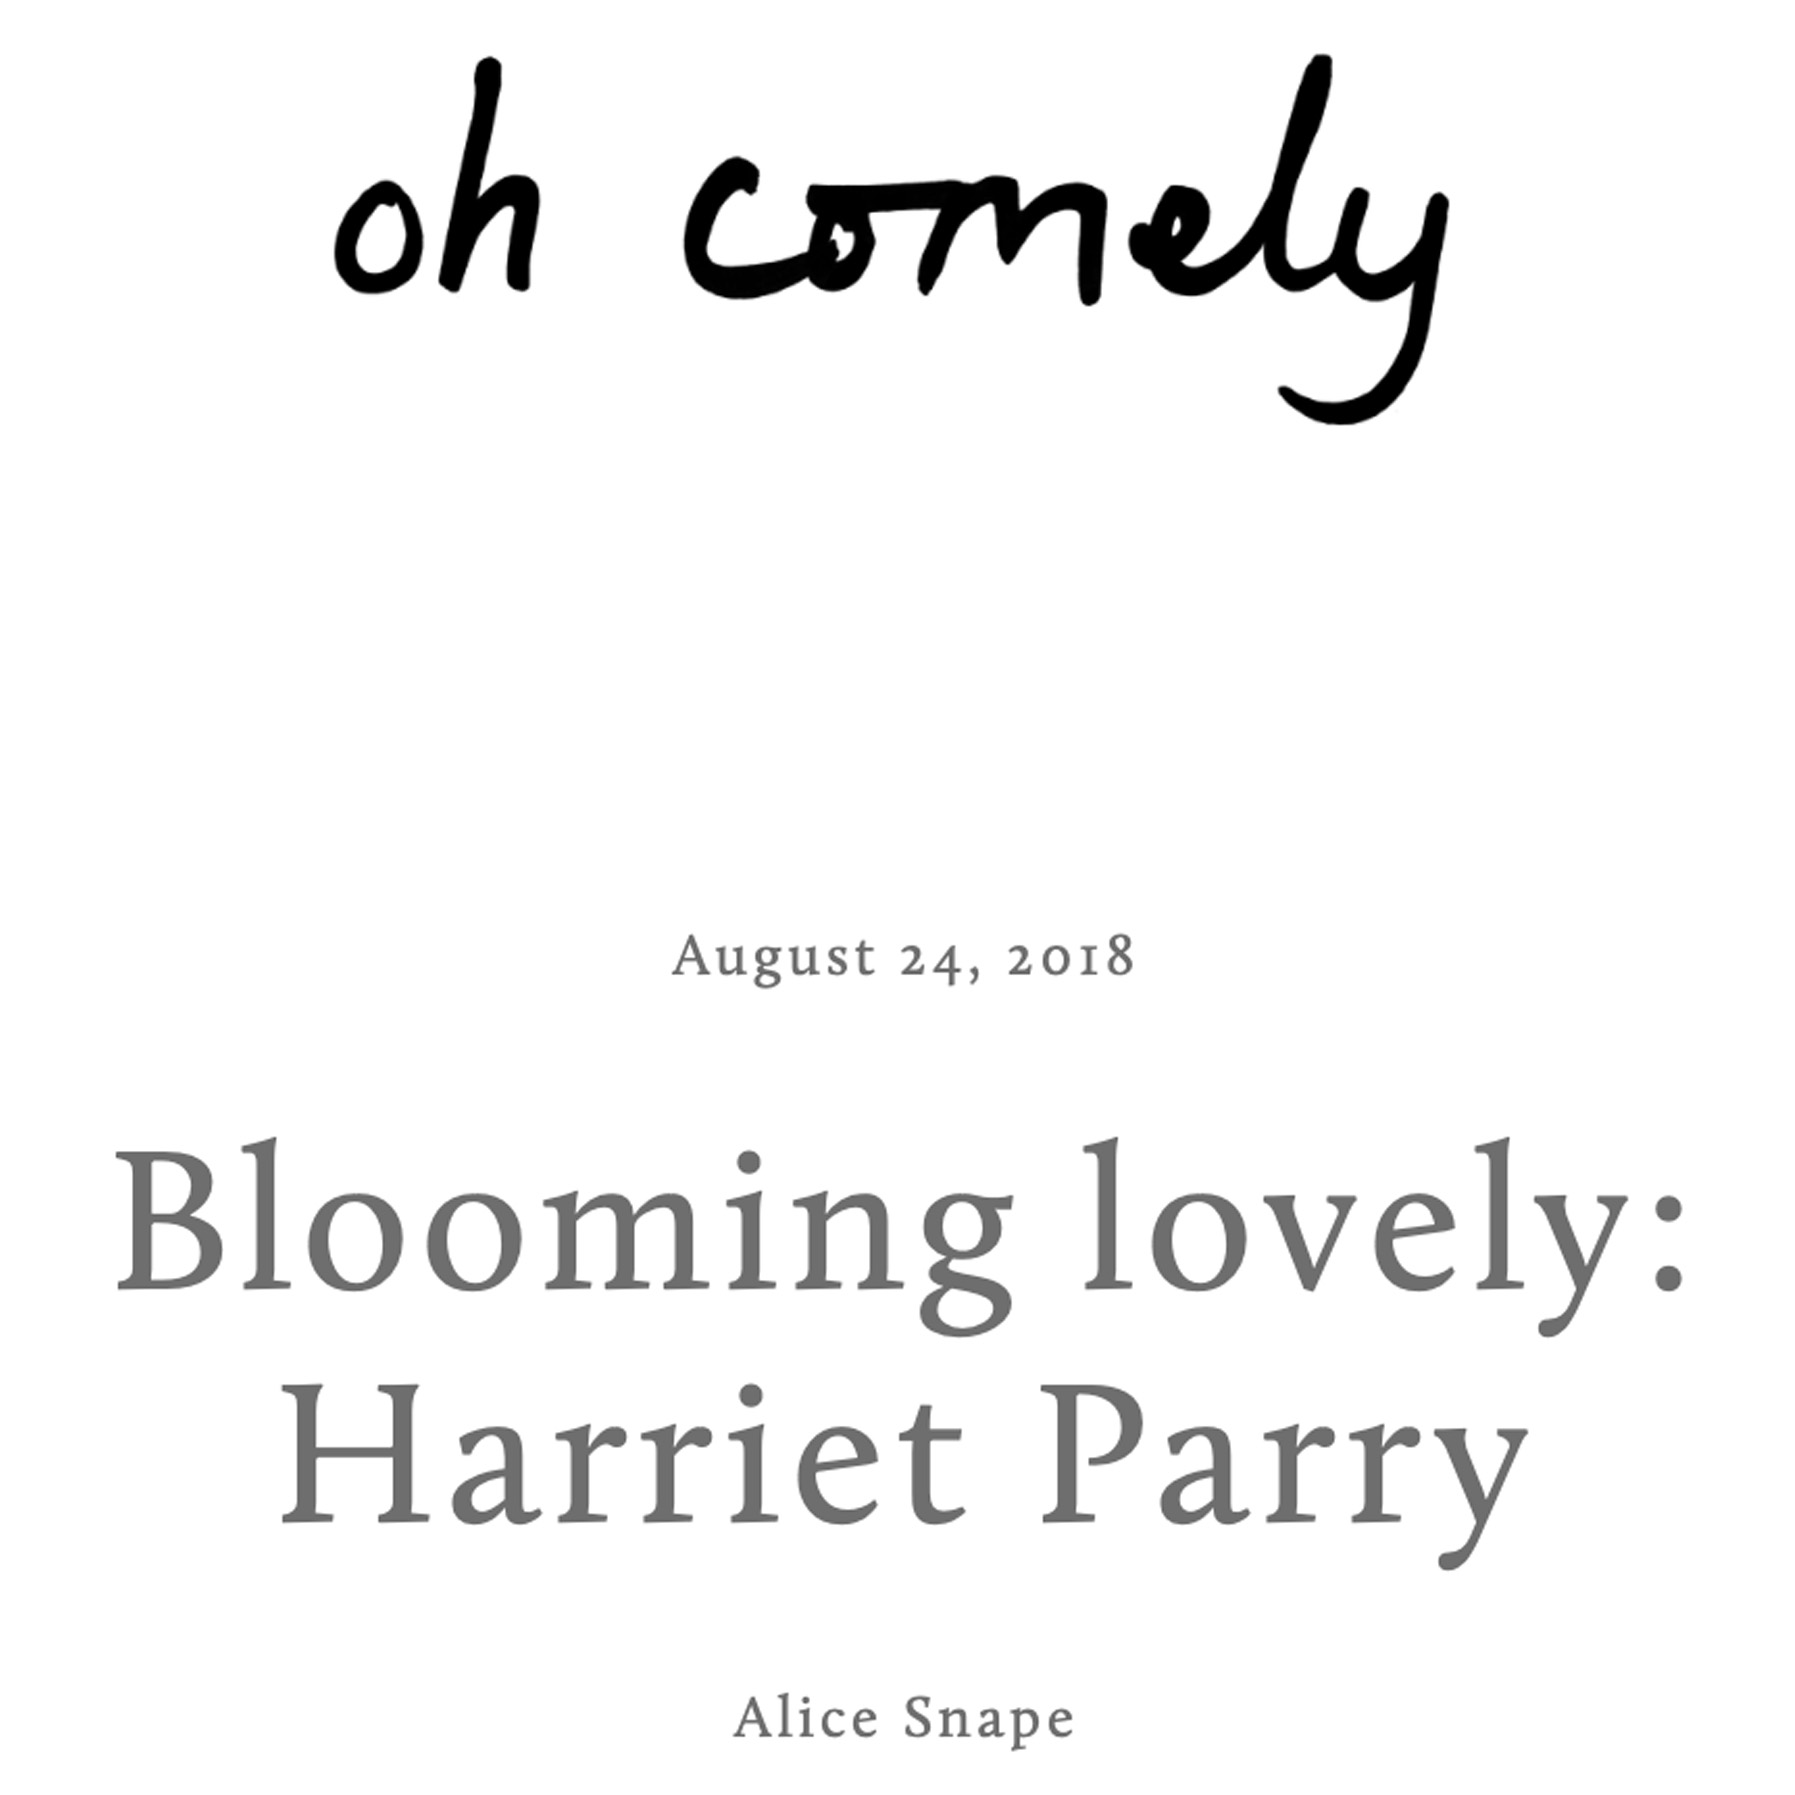 oh comely-harriet parry feature.jpg